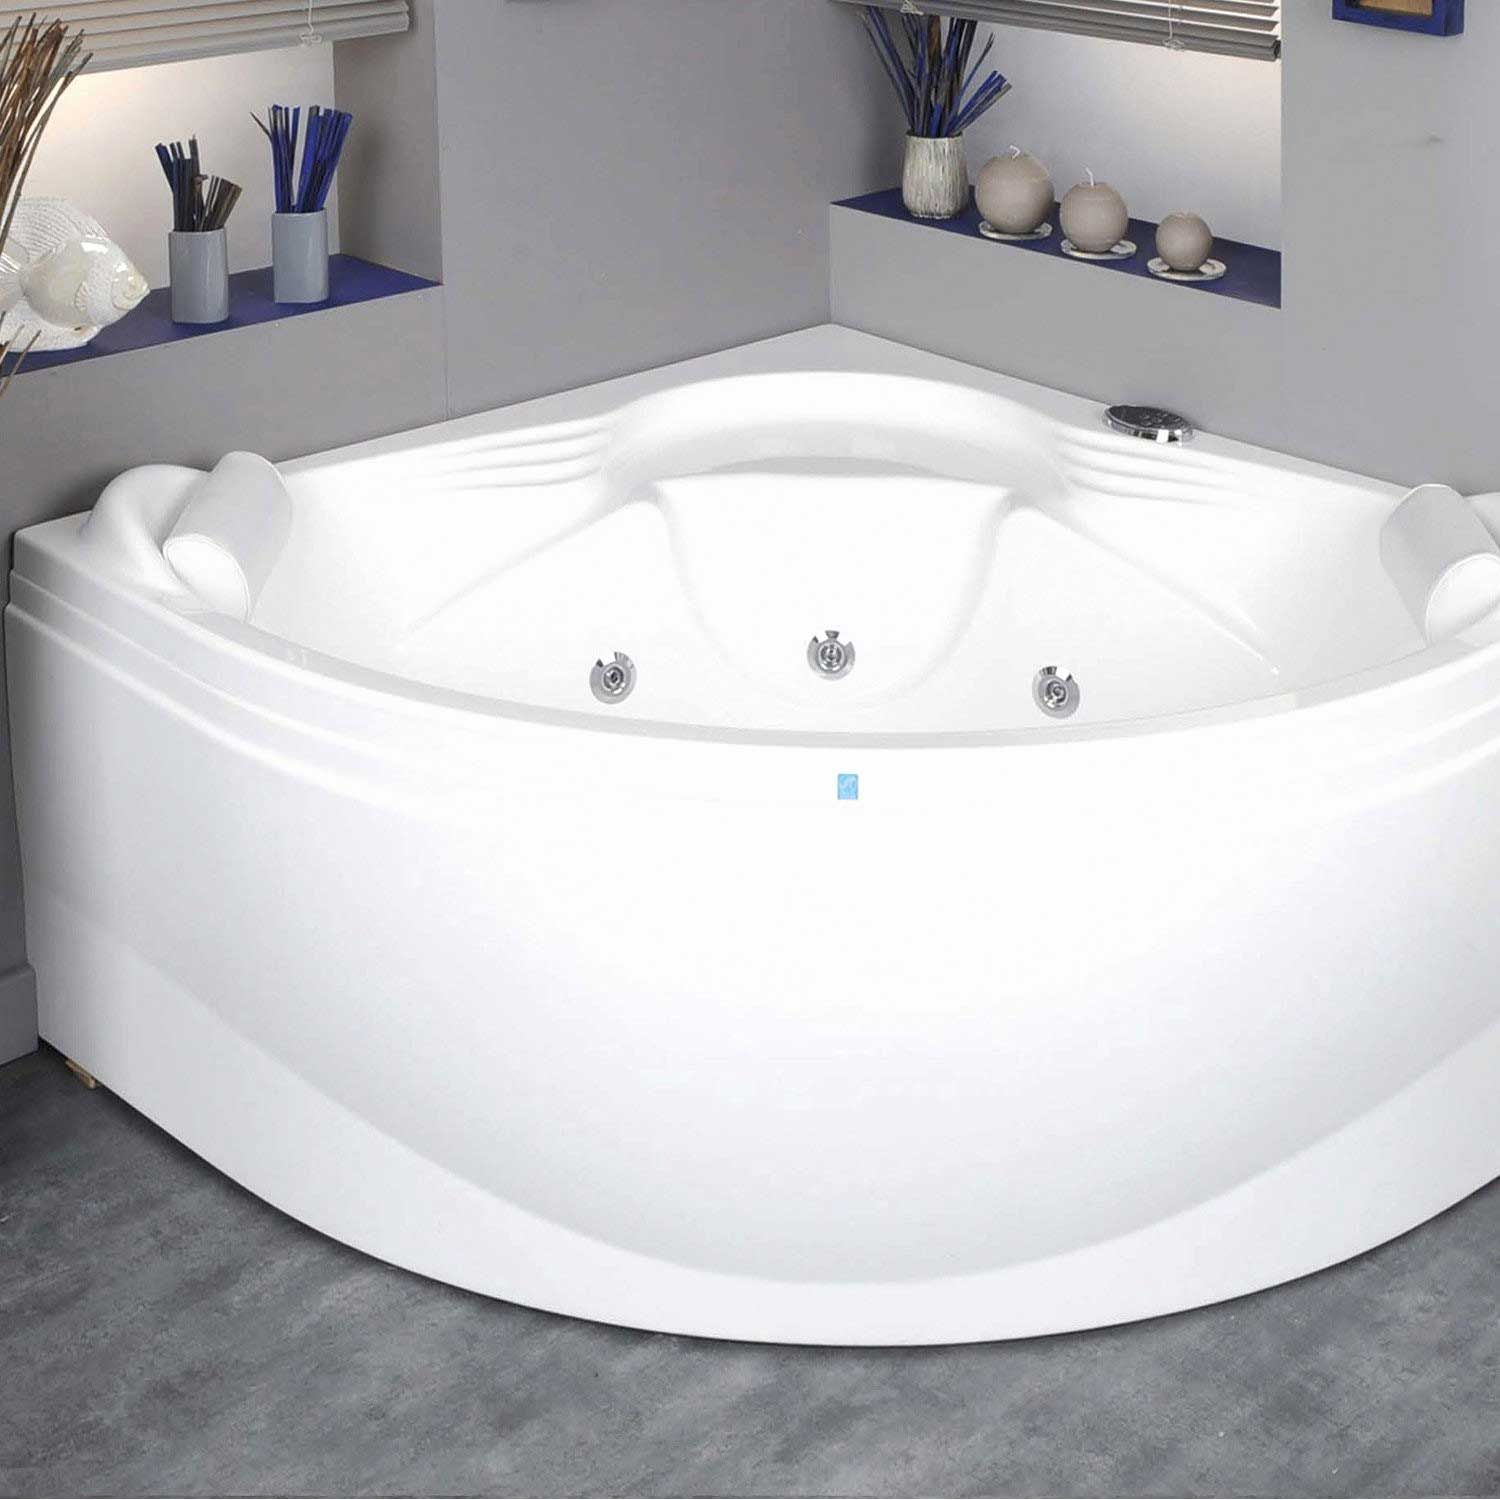 Leroy Merlin Spa Intex spa gonflable jet et bulles inspirant jacuzzi leroy merlin